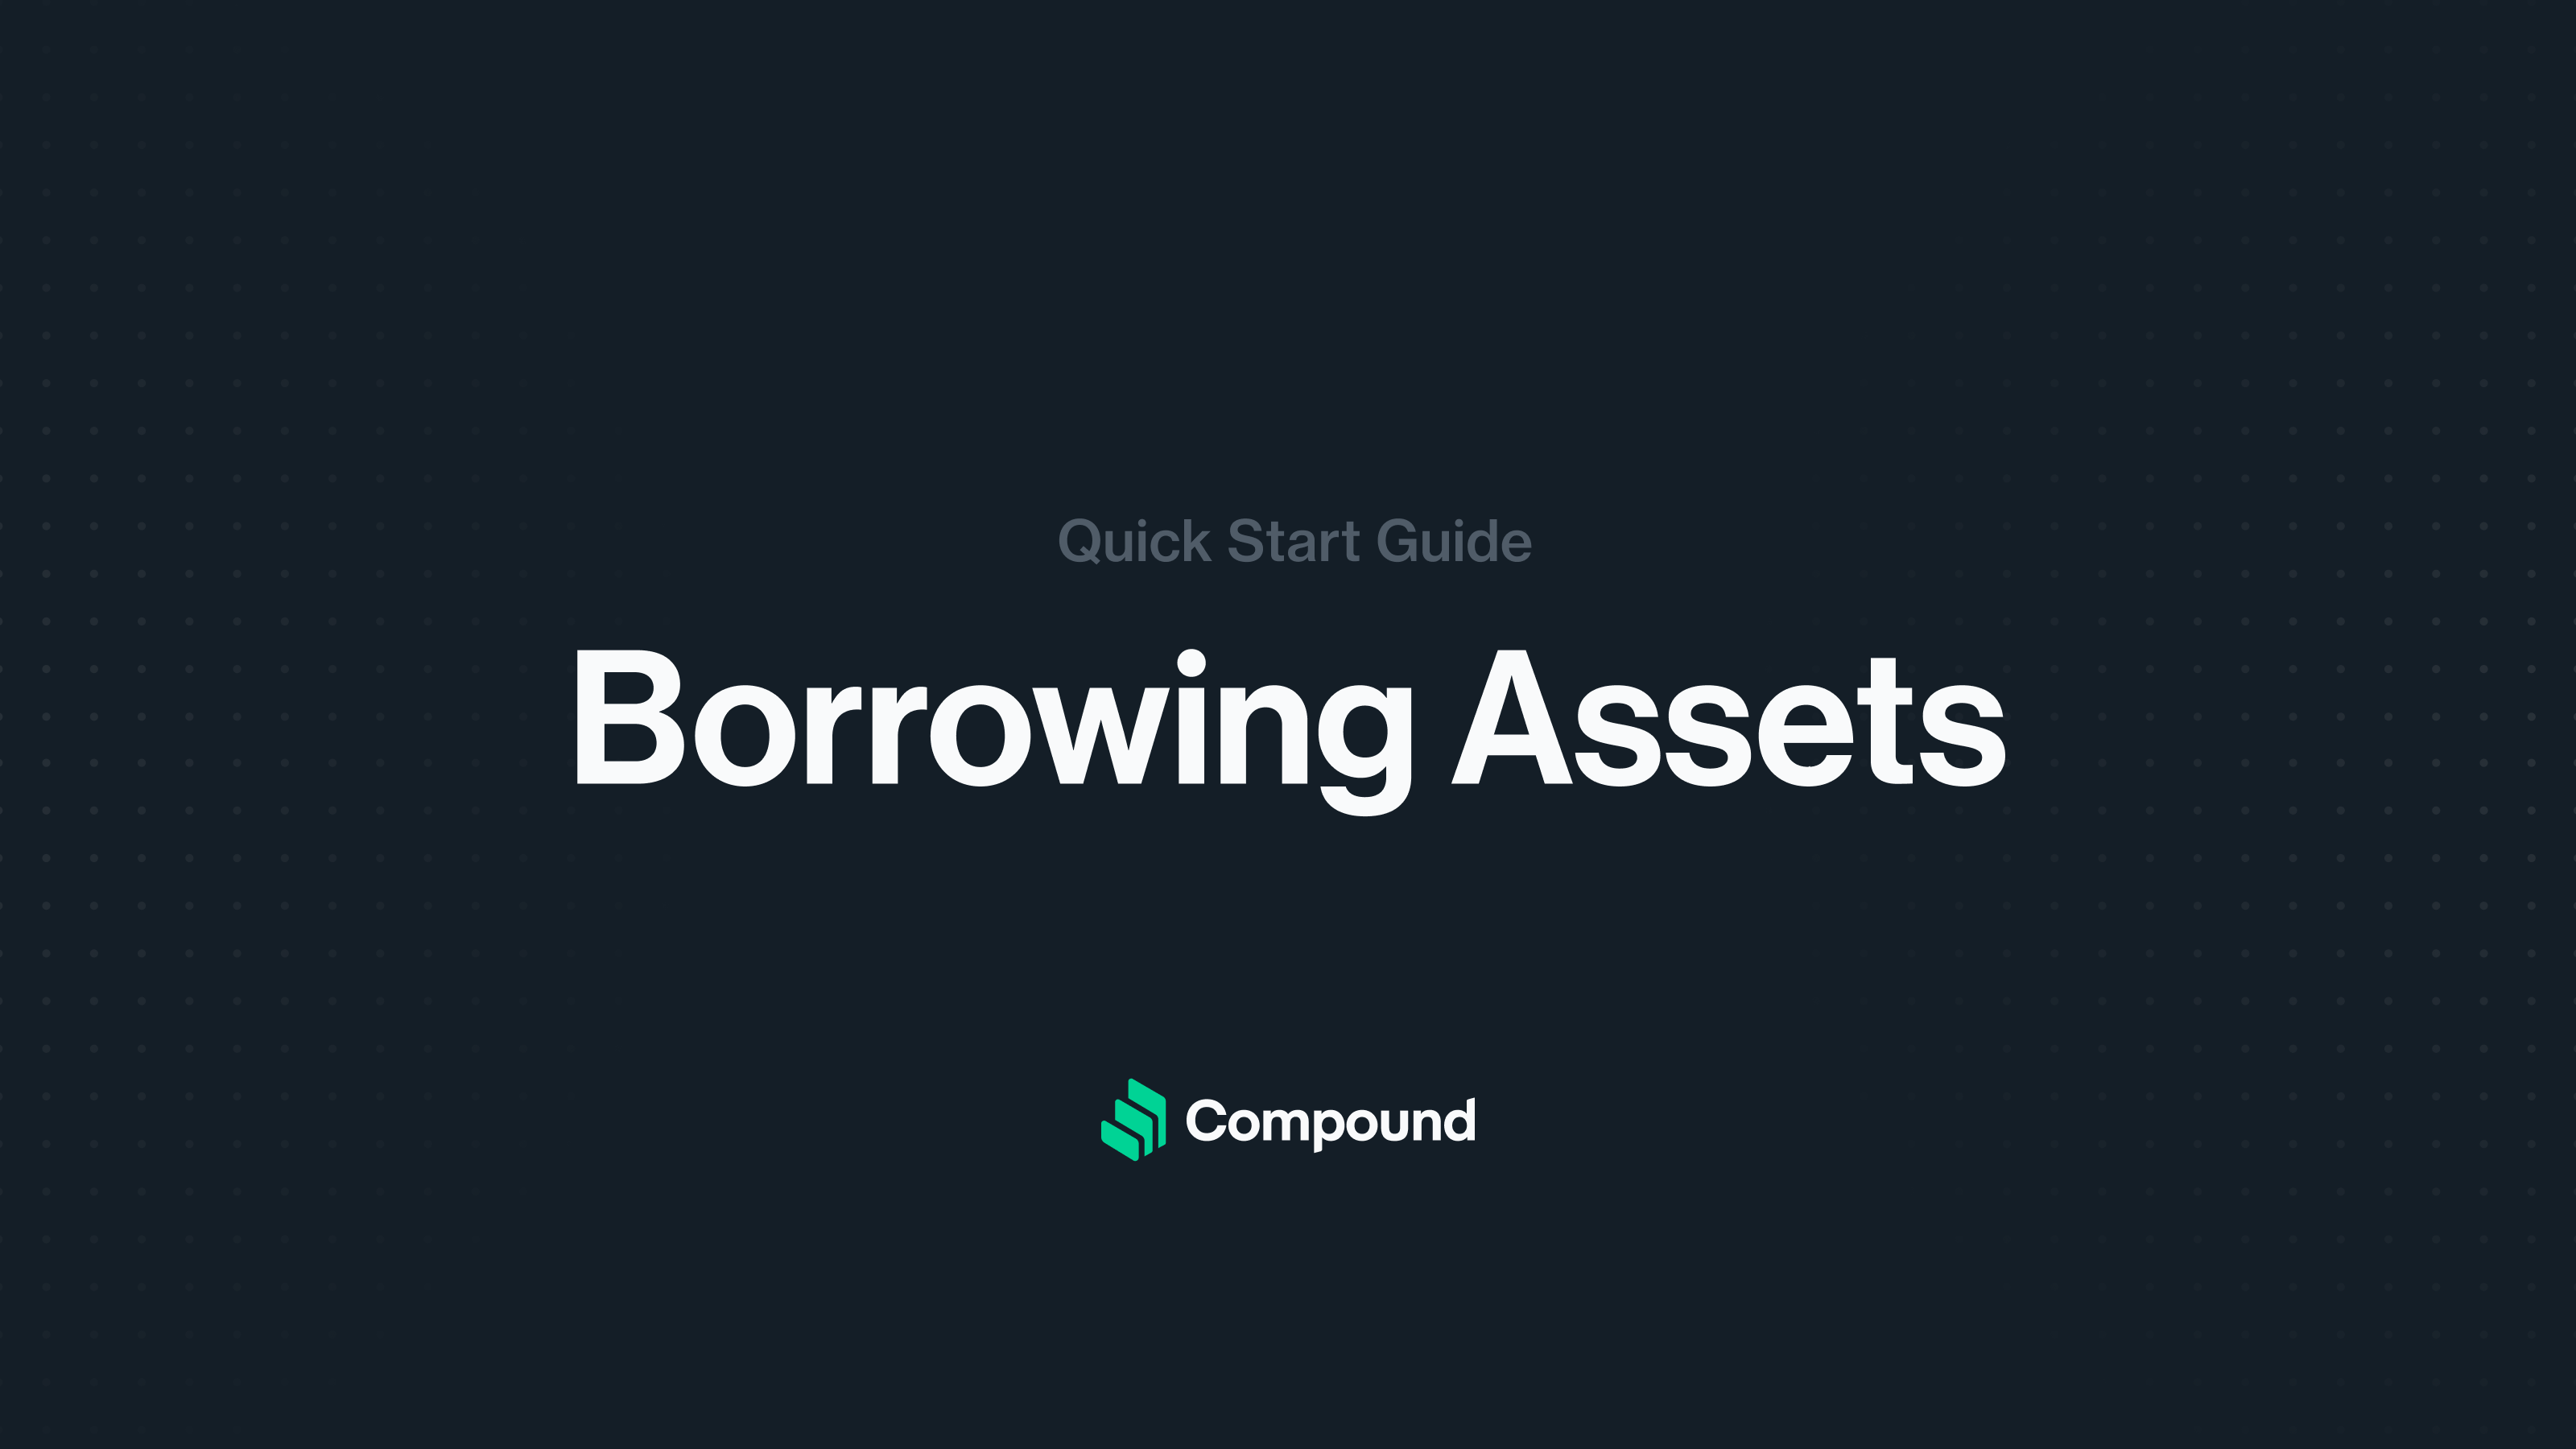 Quick start guide for borrowing assets from the Compound Protocol with Solidity and JavaScript code examples